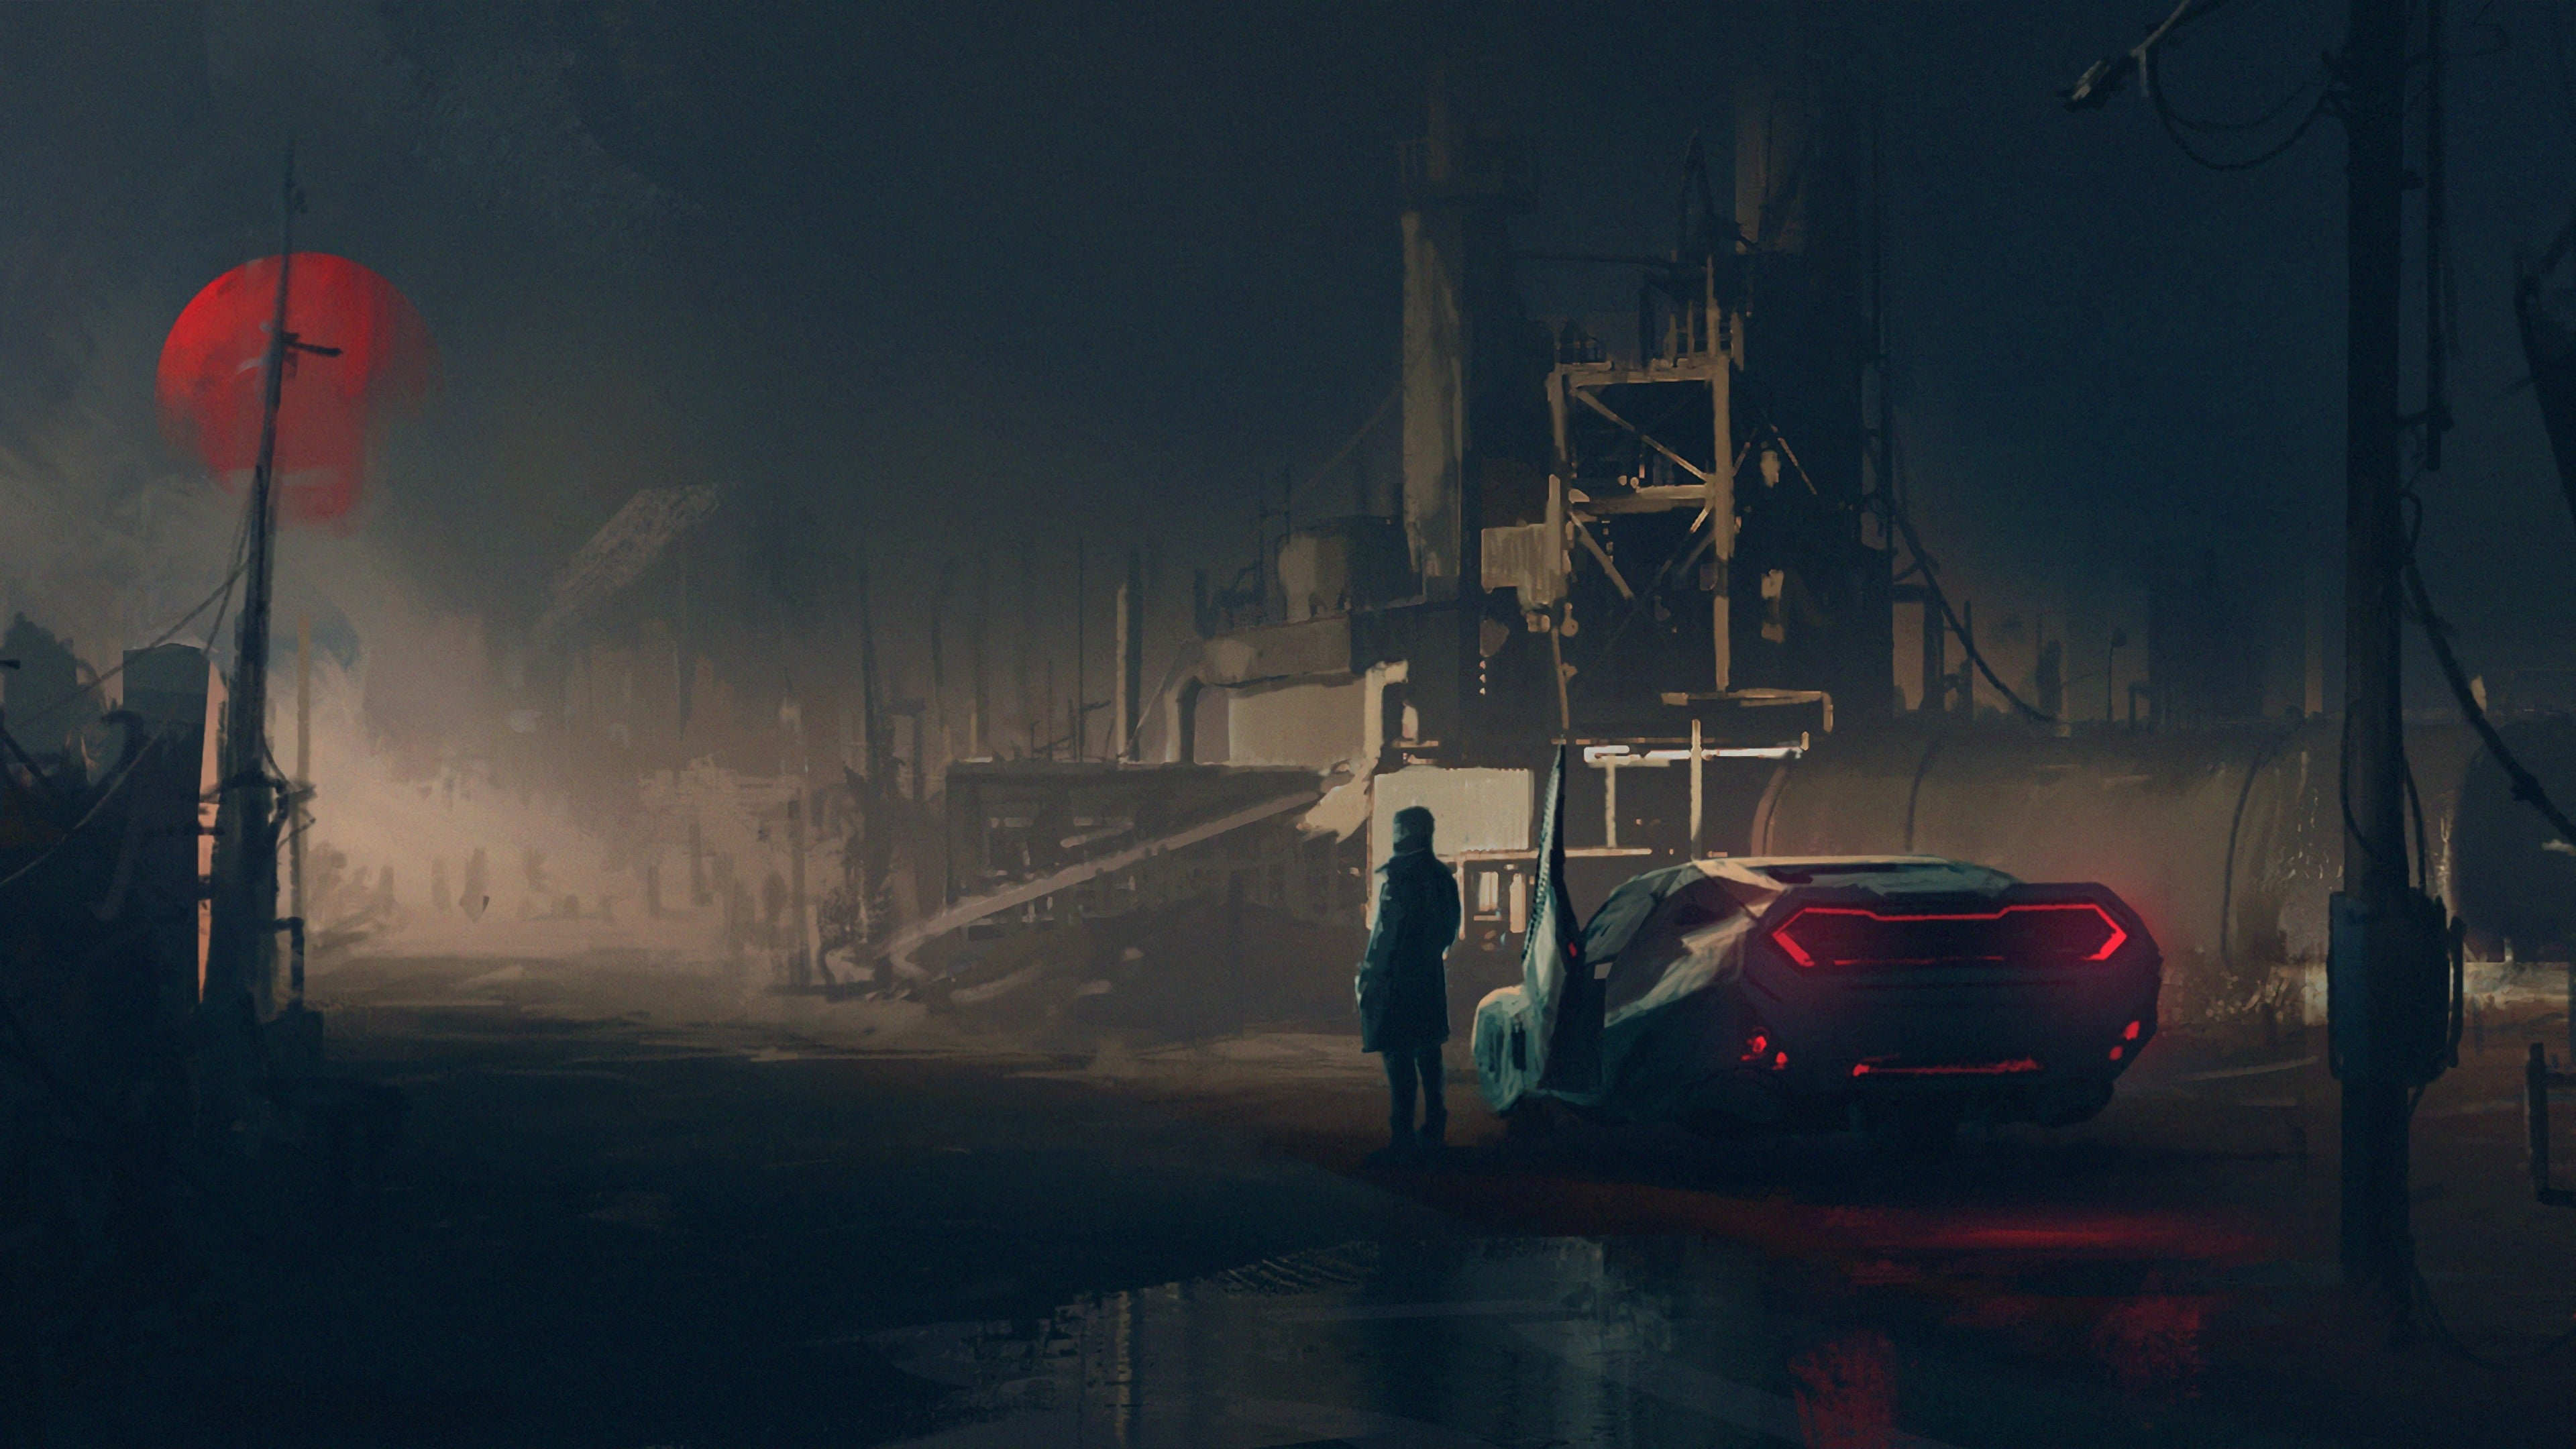 Bladerunner2049 4k Wallpapers For Your Desktop Or Mobile Screen Free And Easy To Download